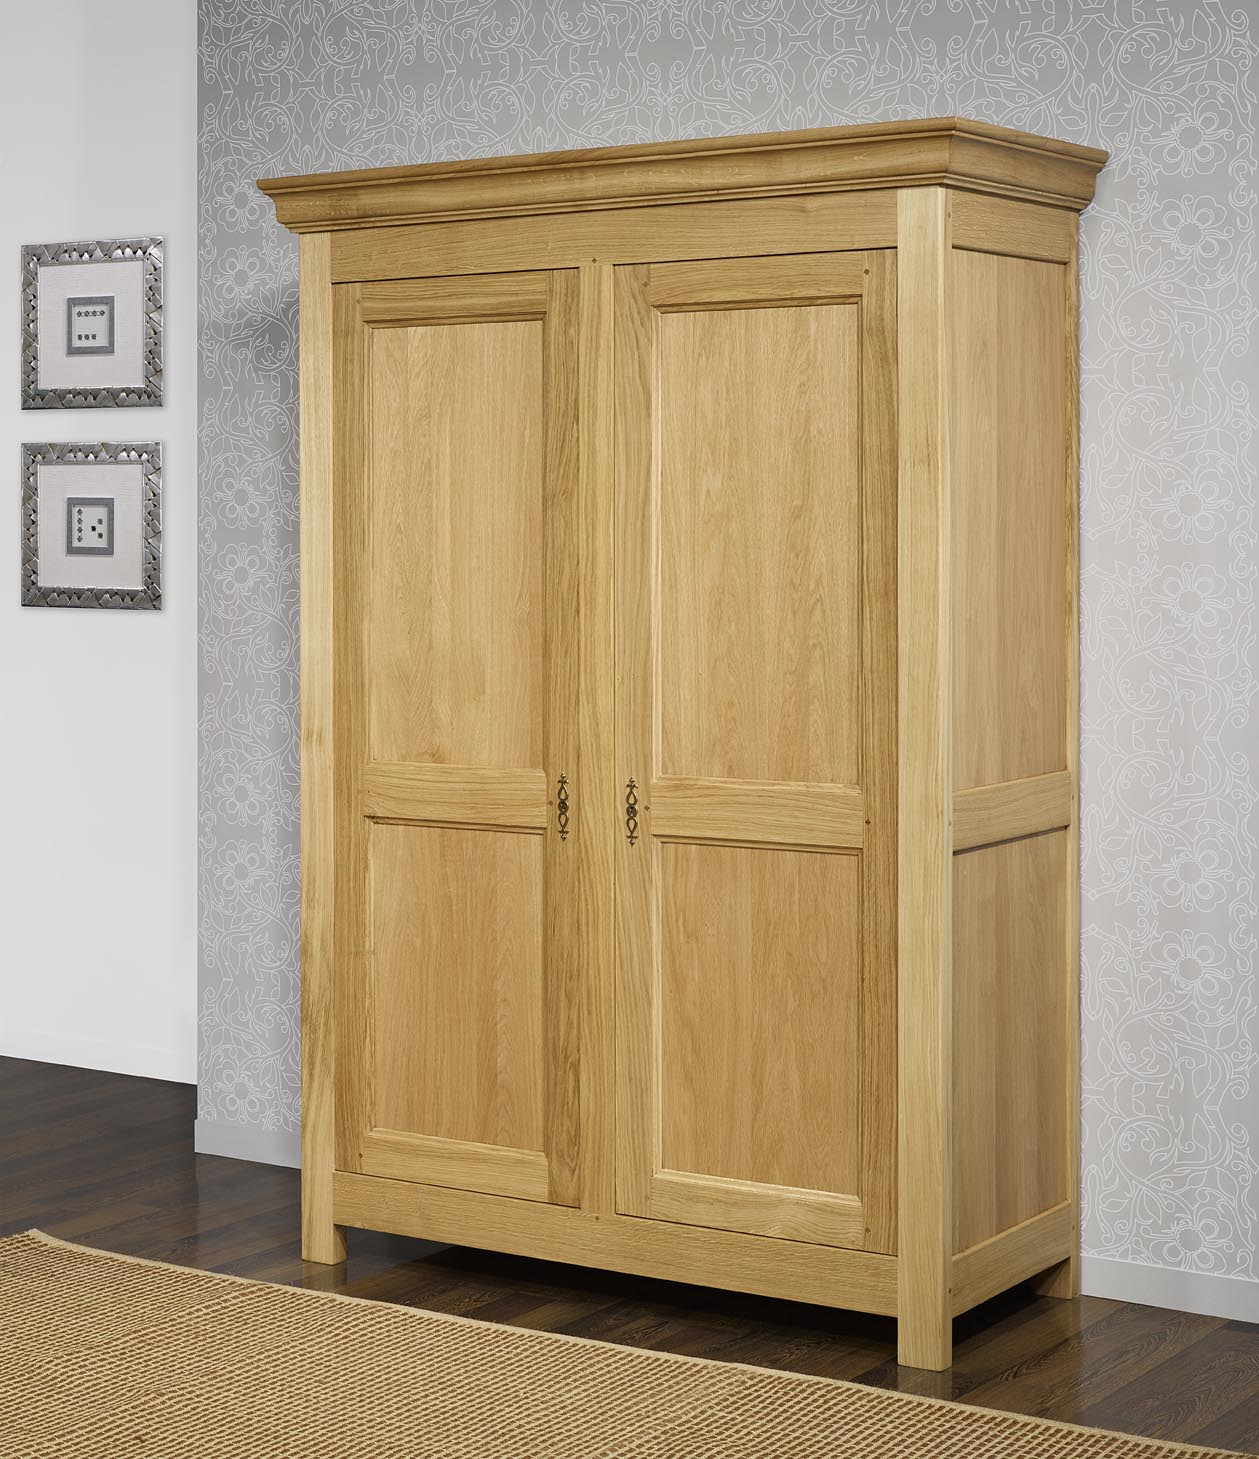 armoire 2 portes en ch ne massif de style campagnard meuble en ch ne massif. Black Bedroom Furniture Sets. Home Design Ideas